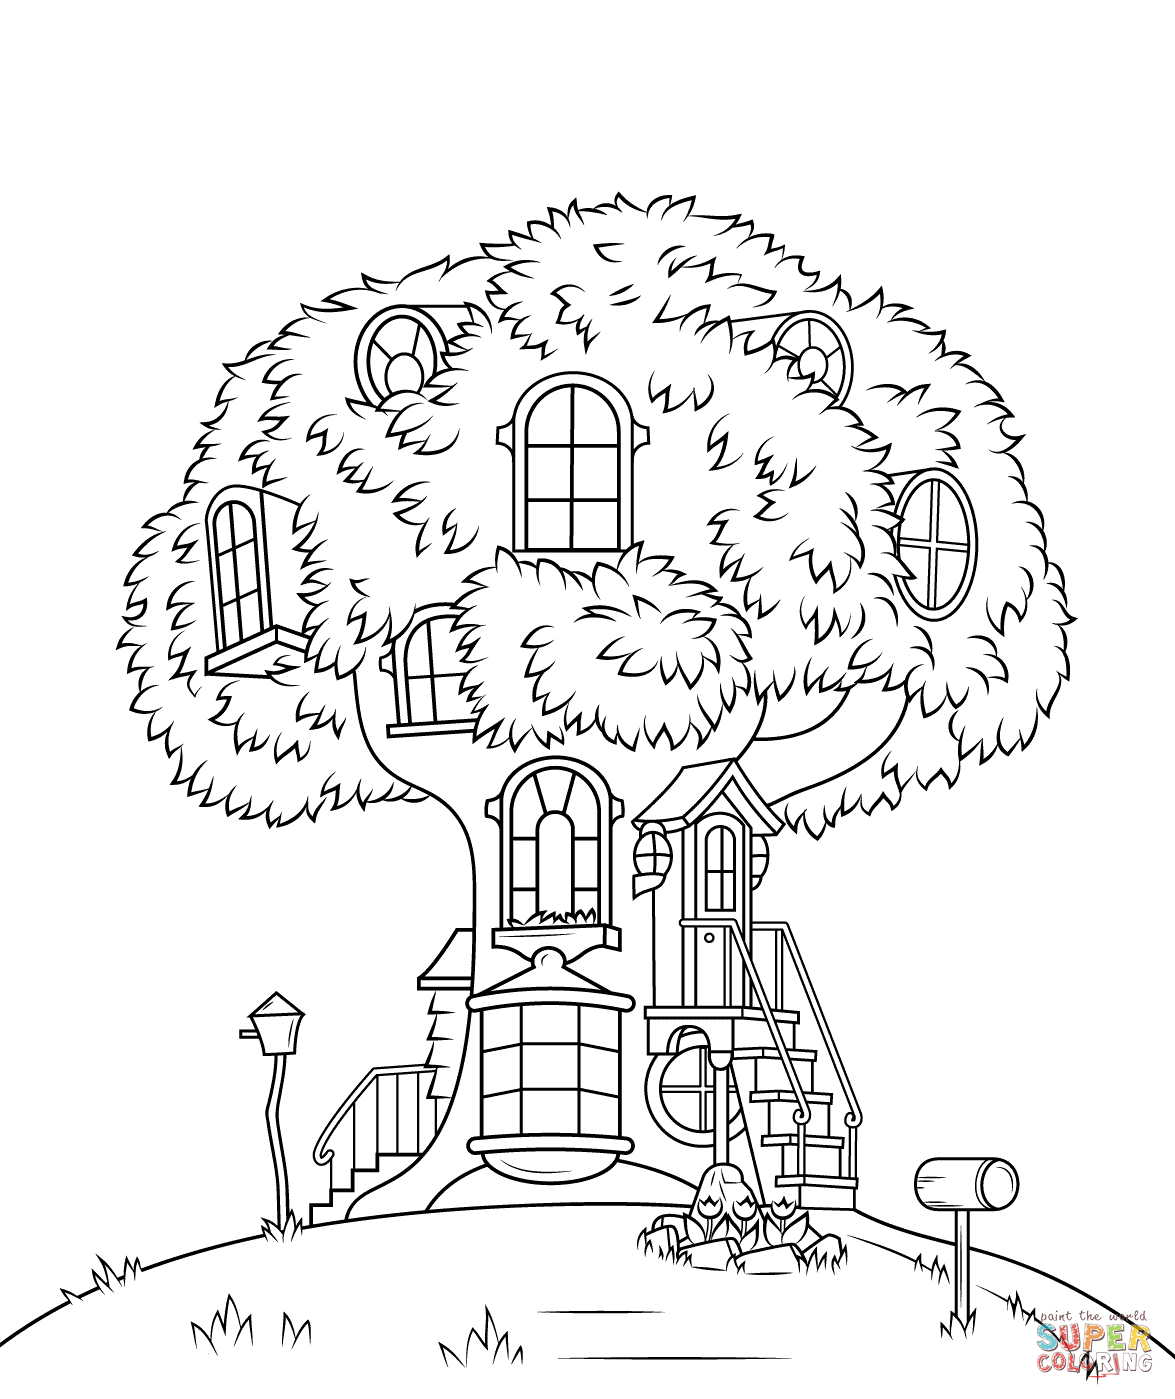 Treehouse coloring #14, Download drawings